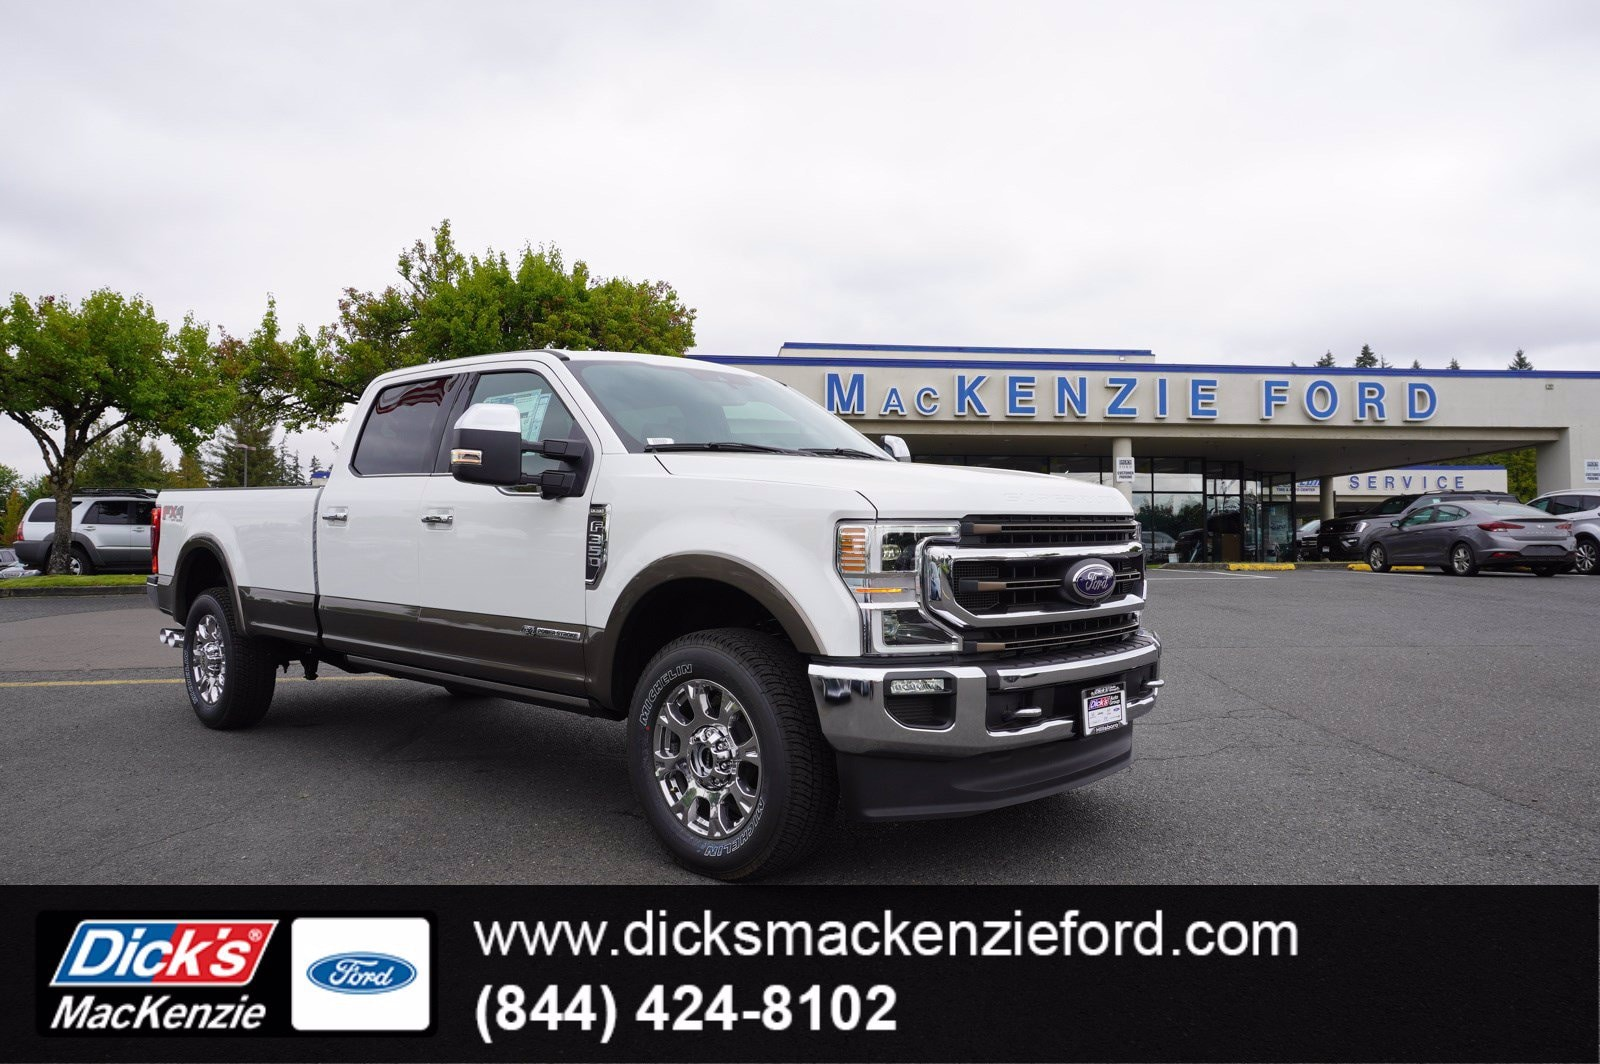 2020 Ford F-350 Crew Cab 4x4, Pickup #209525 - photo 1